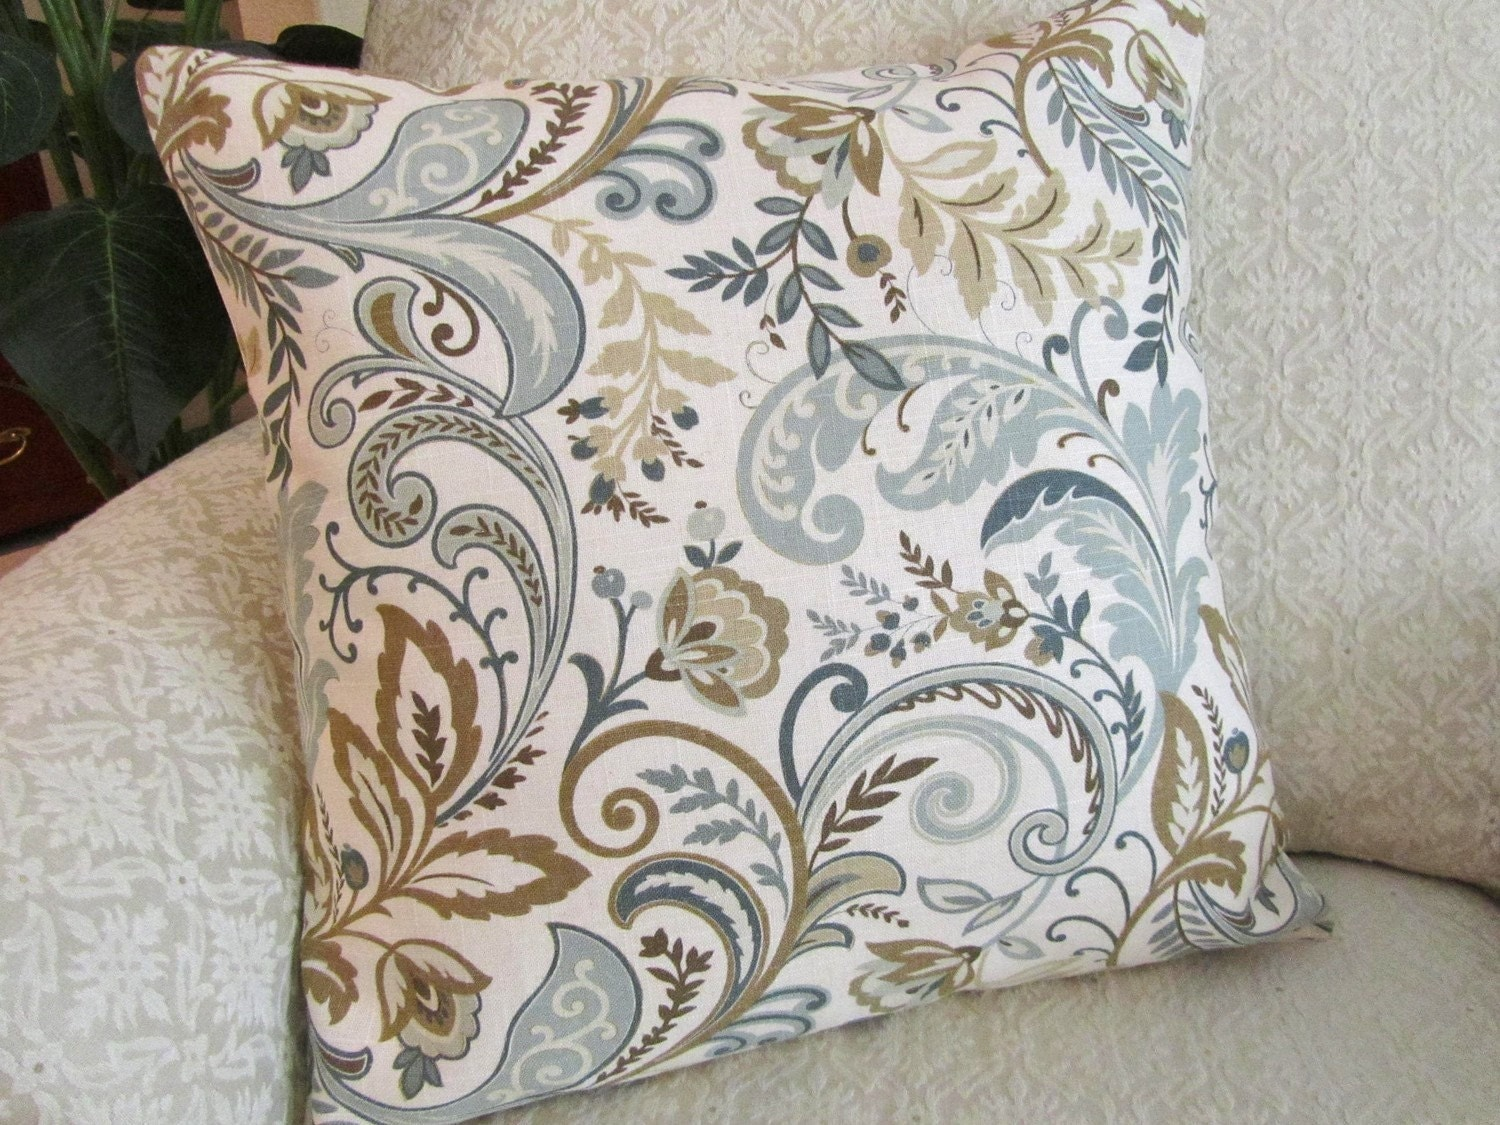 Decorative Throw Pillow Cover Slate Blue Beige Taupe 18 X 18